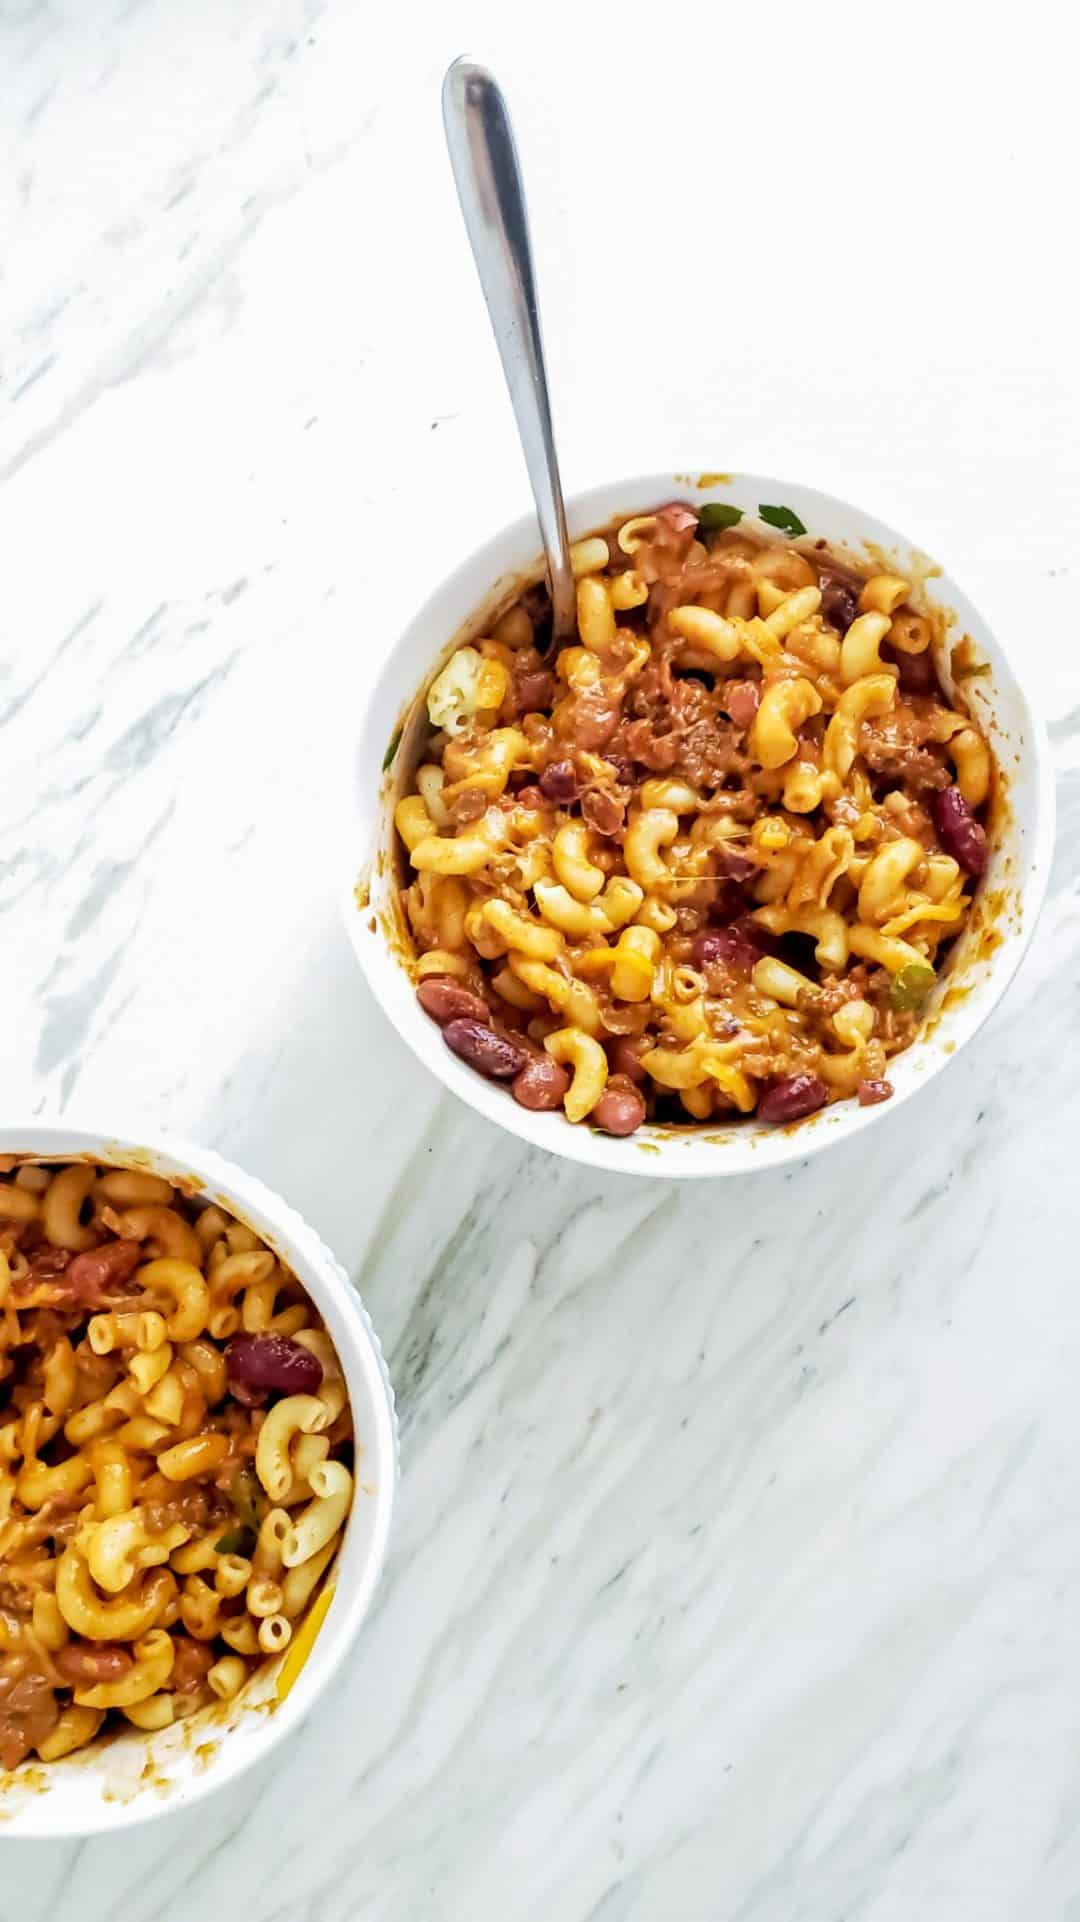 These family-friendly meals use pantry ingredients like beans, lentils, canned goods, pasta, rice, and broth, plus or minus staples that keep well in the freezer or refrigerator. These flexible recipes are all about using what you have on hand to make easy, delicious lunches and dinners! | glitterinc.com | @glitterinc // Sweet and Spicy Chili Mac